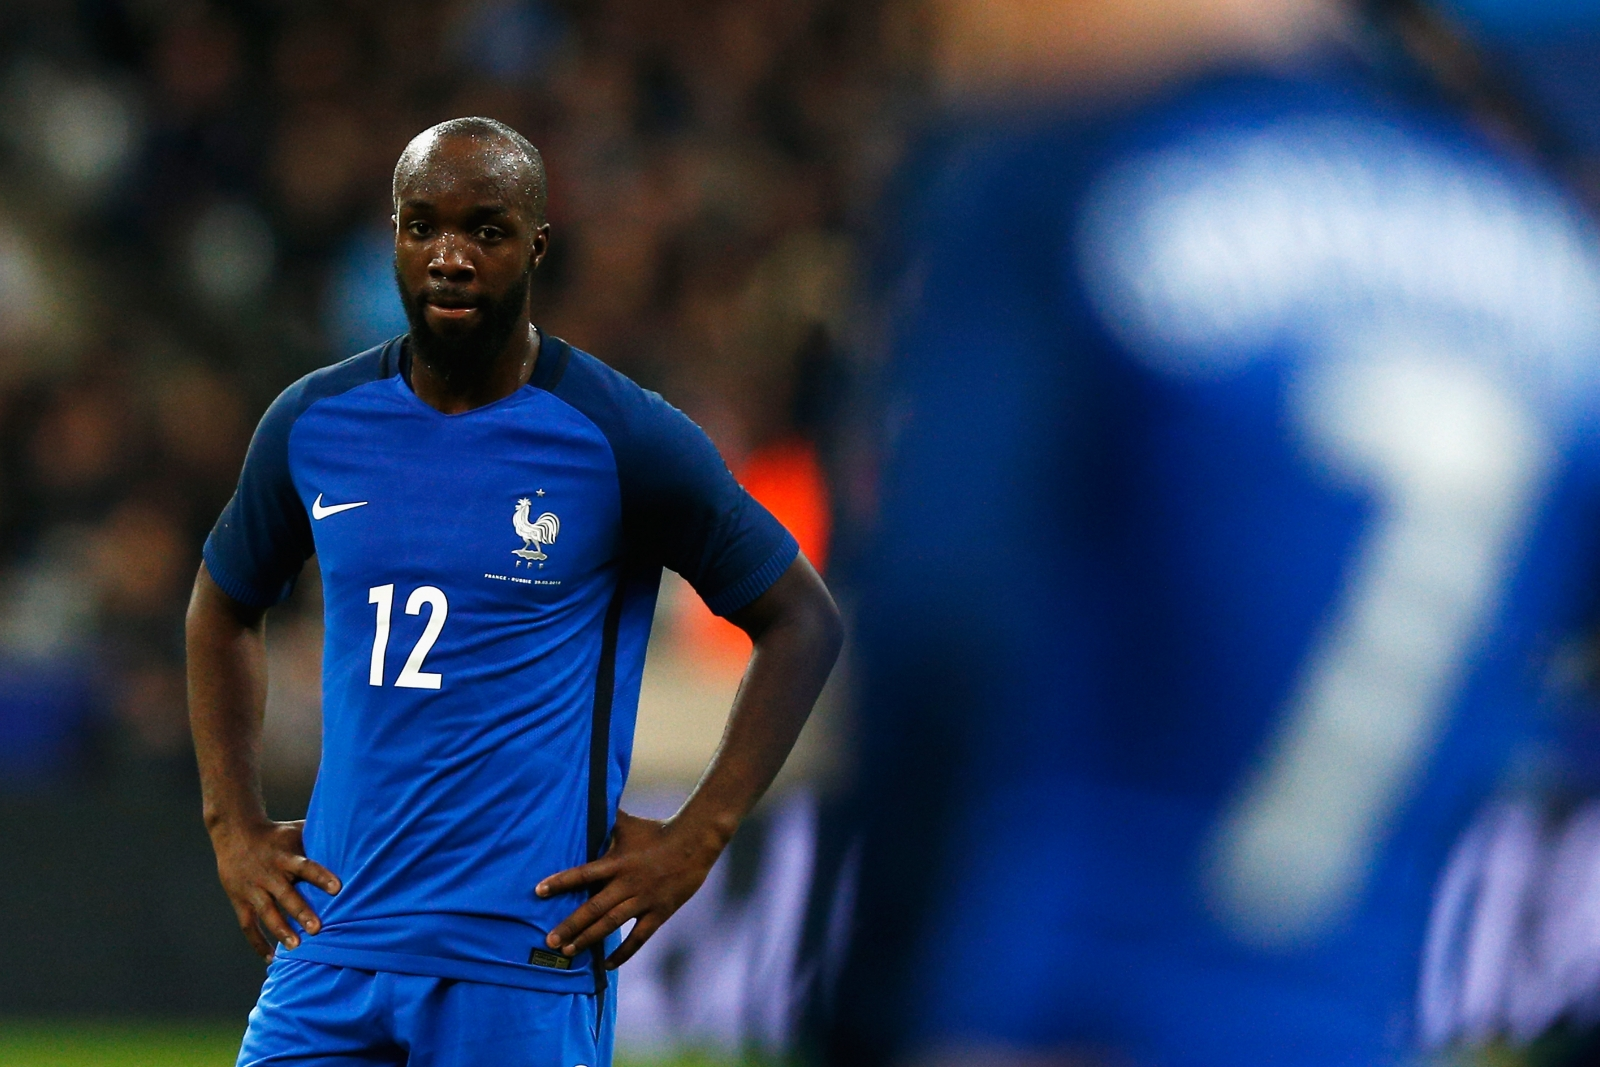 Jose reunite Diarra could Manchester  United: with Lassana